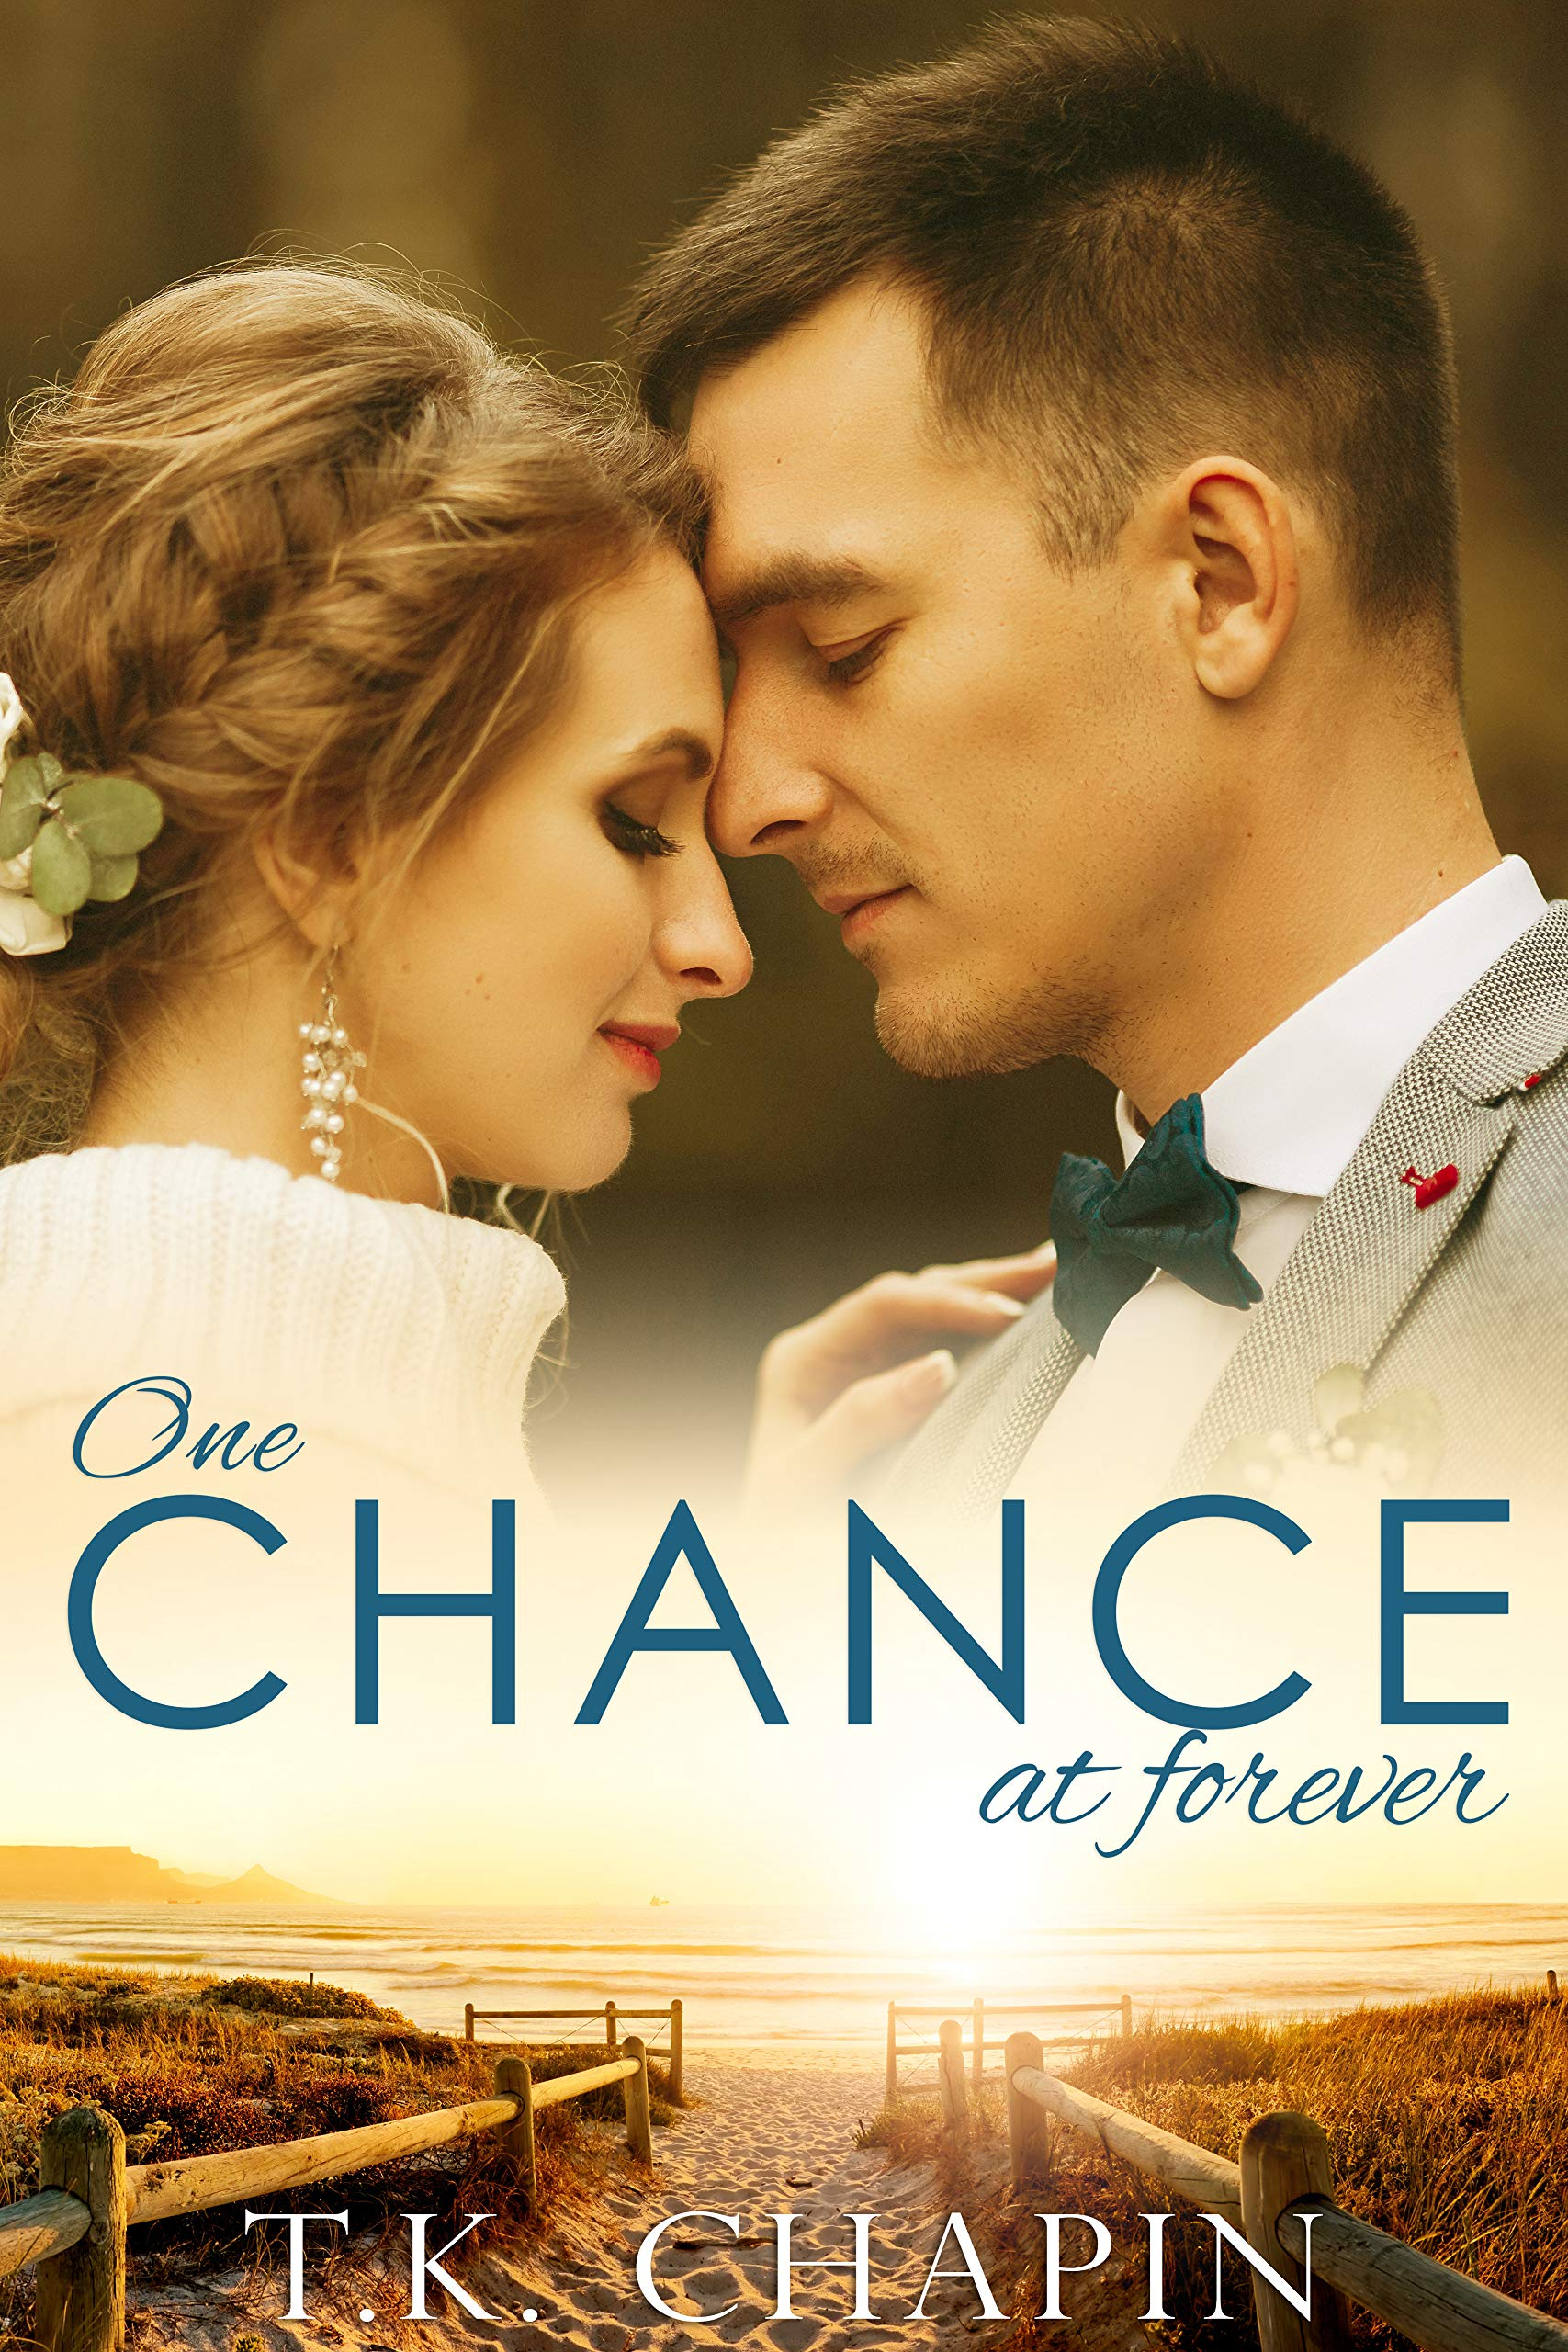 One Chance At Forever: A Realistic Christian Romance About Finding God And Love (Faithful Love Book 2)